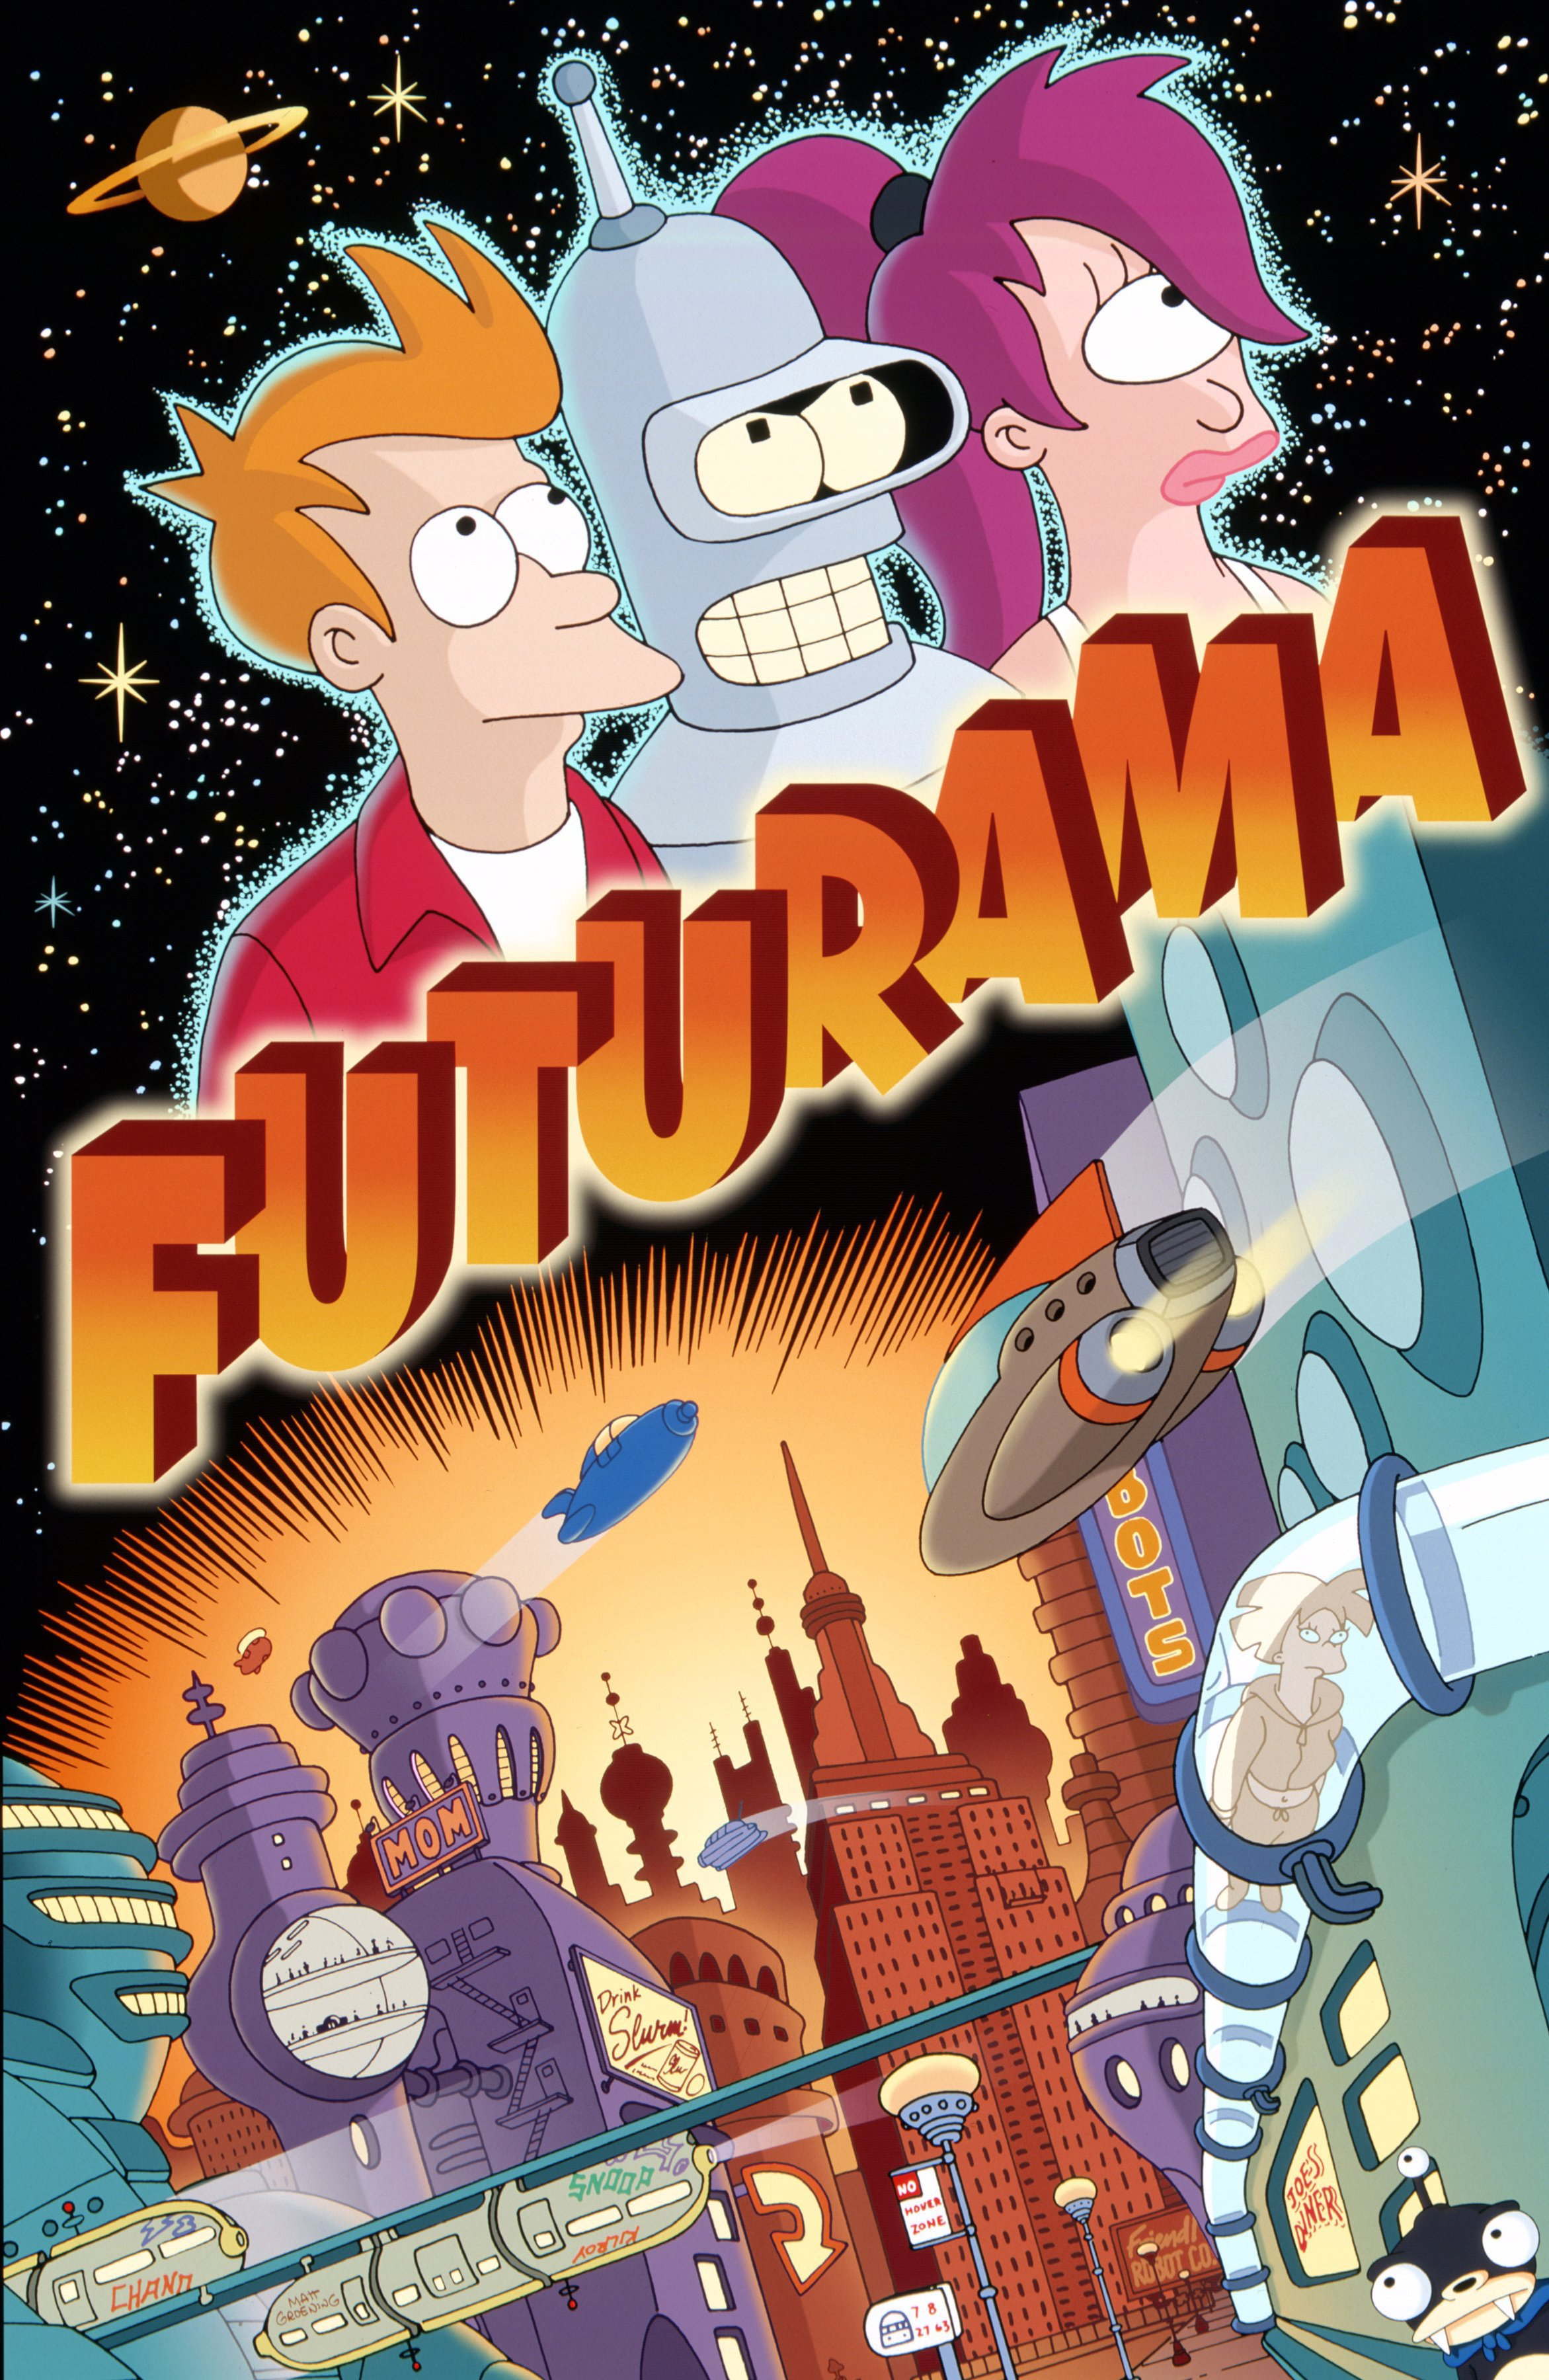 Futurama - I'm still on the cartoon train, baby. Futurama is about a pizza delivery boy from the year 2000 who gets cryogenically frozen and wakes up a thousand years later. If you're into The Simpsons, Bob's Burgers, or South Park, I highly recommend giving this one a go.Available on Hulu